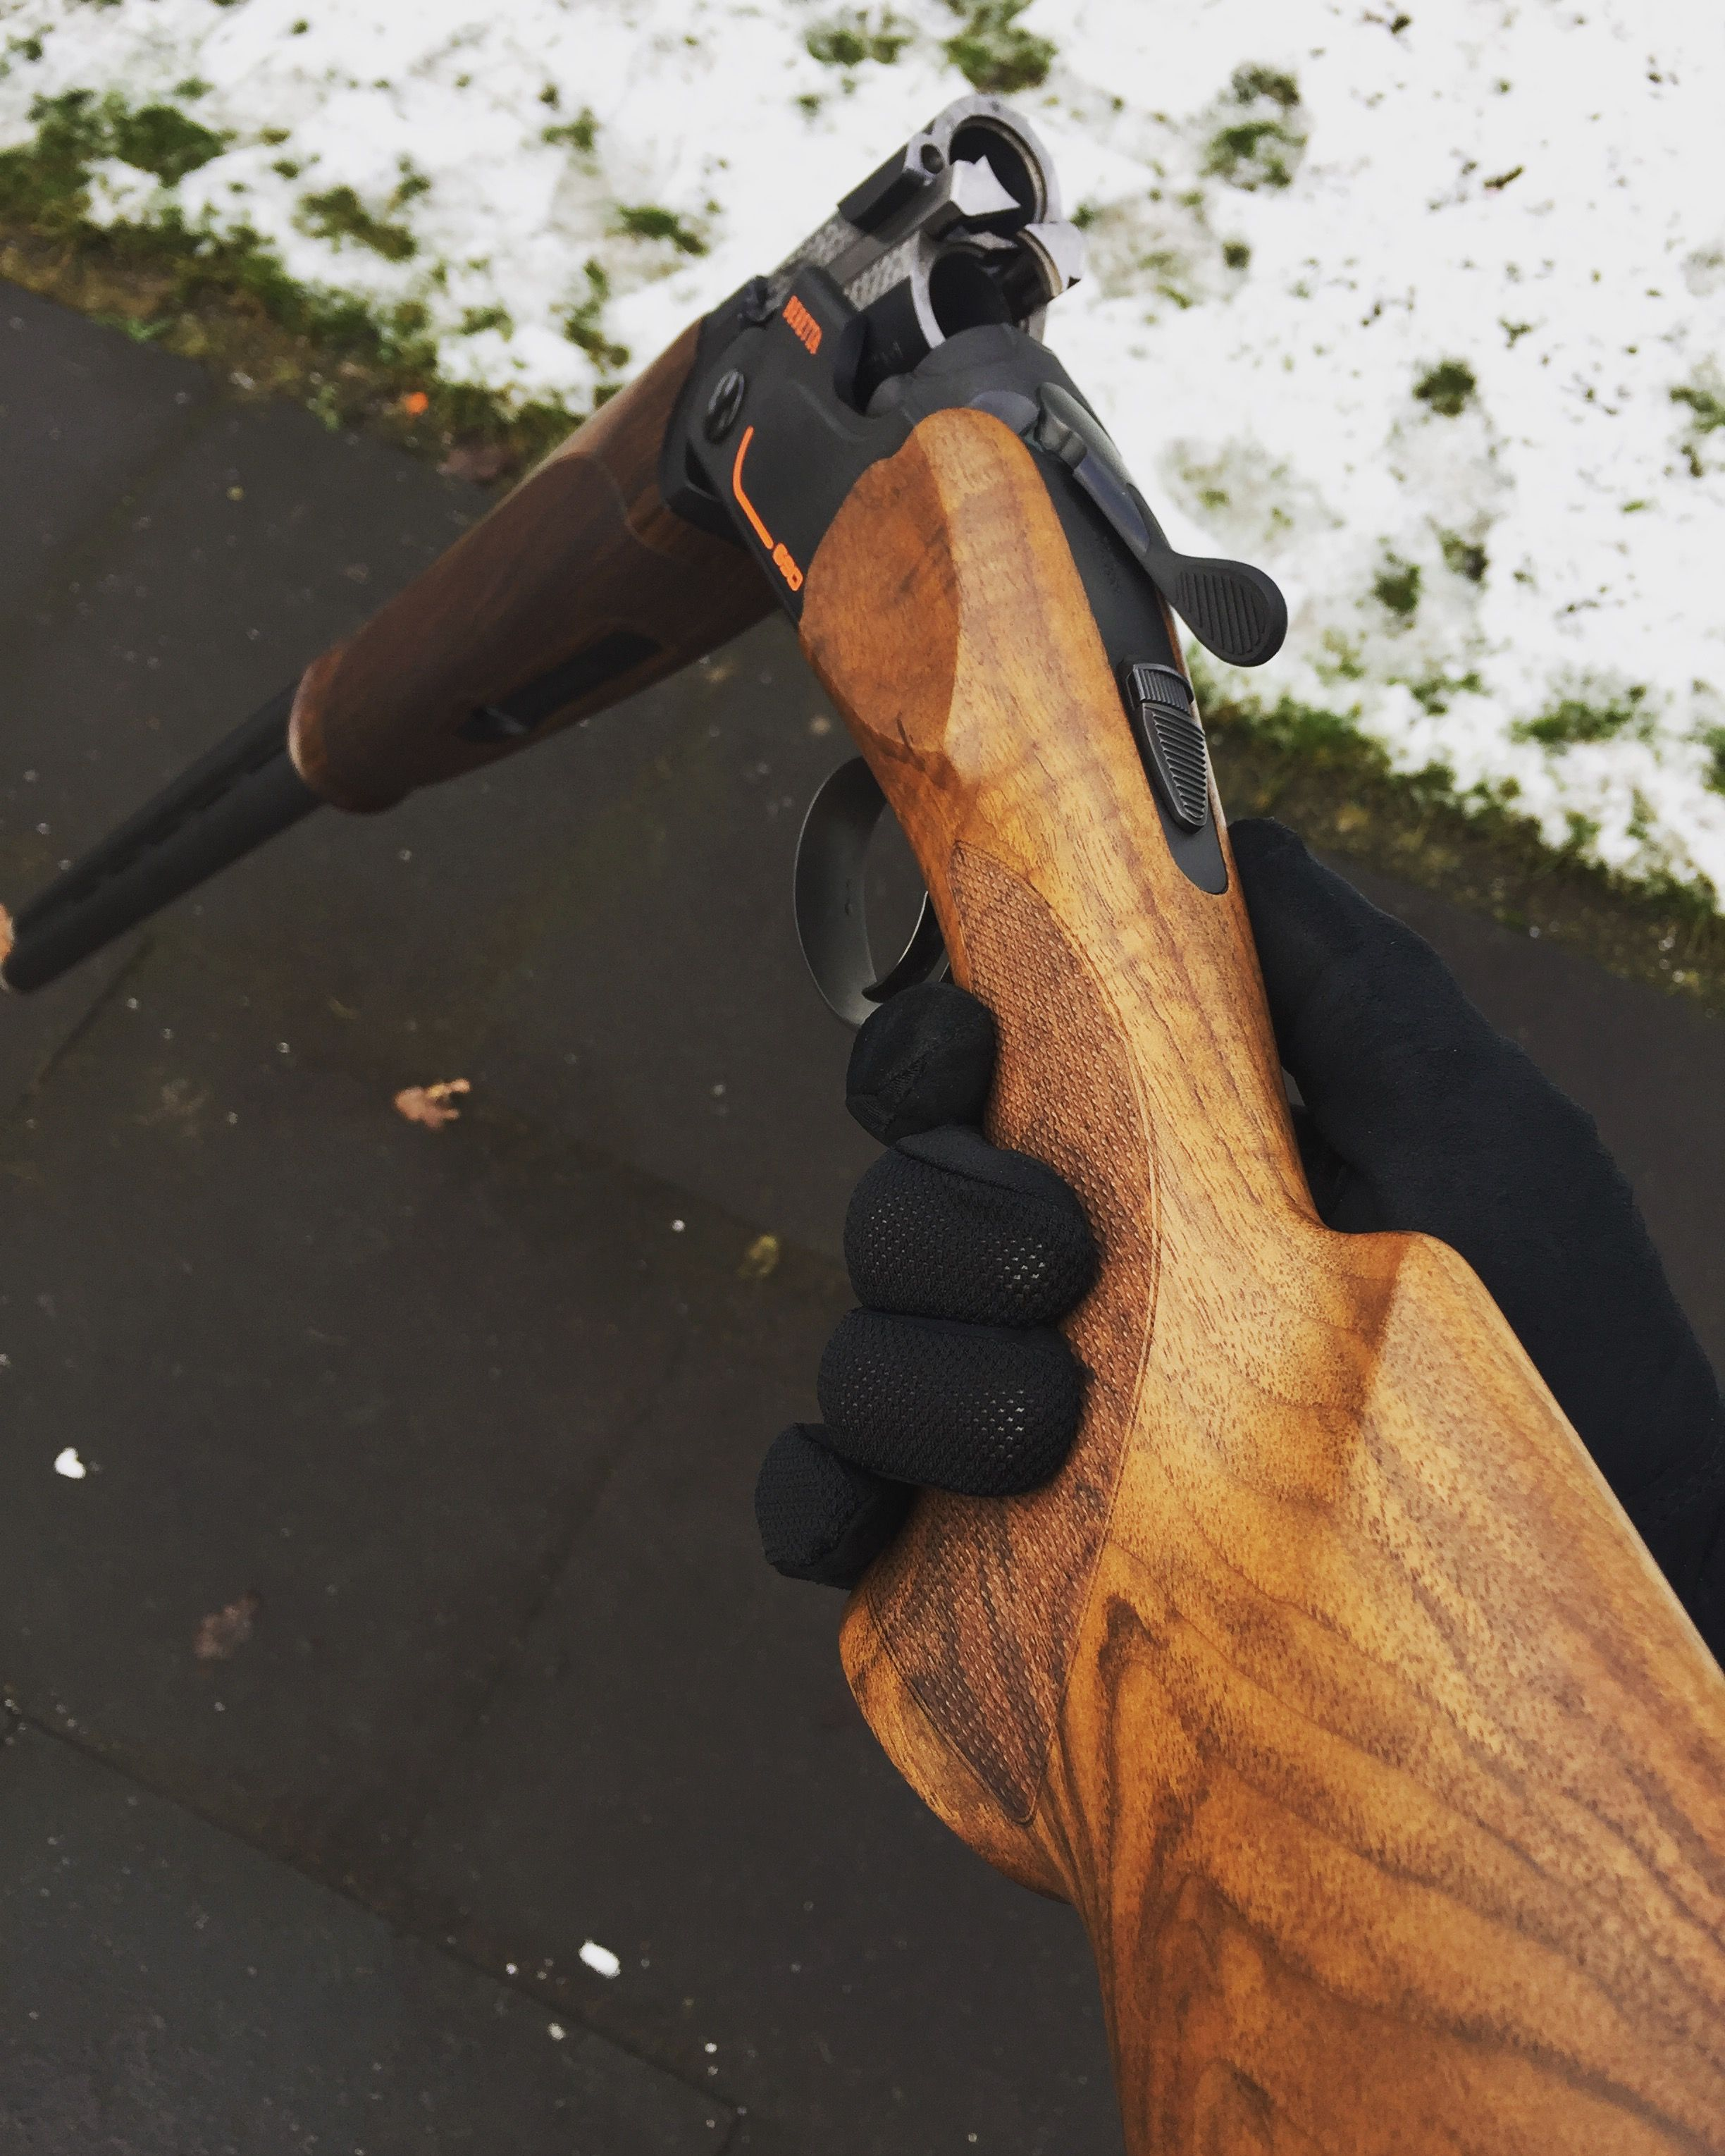 Beretta 690 Sporting Black over under barrel